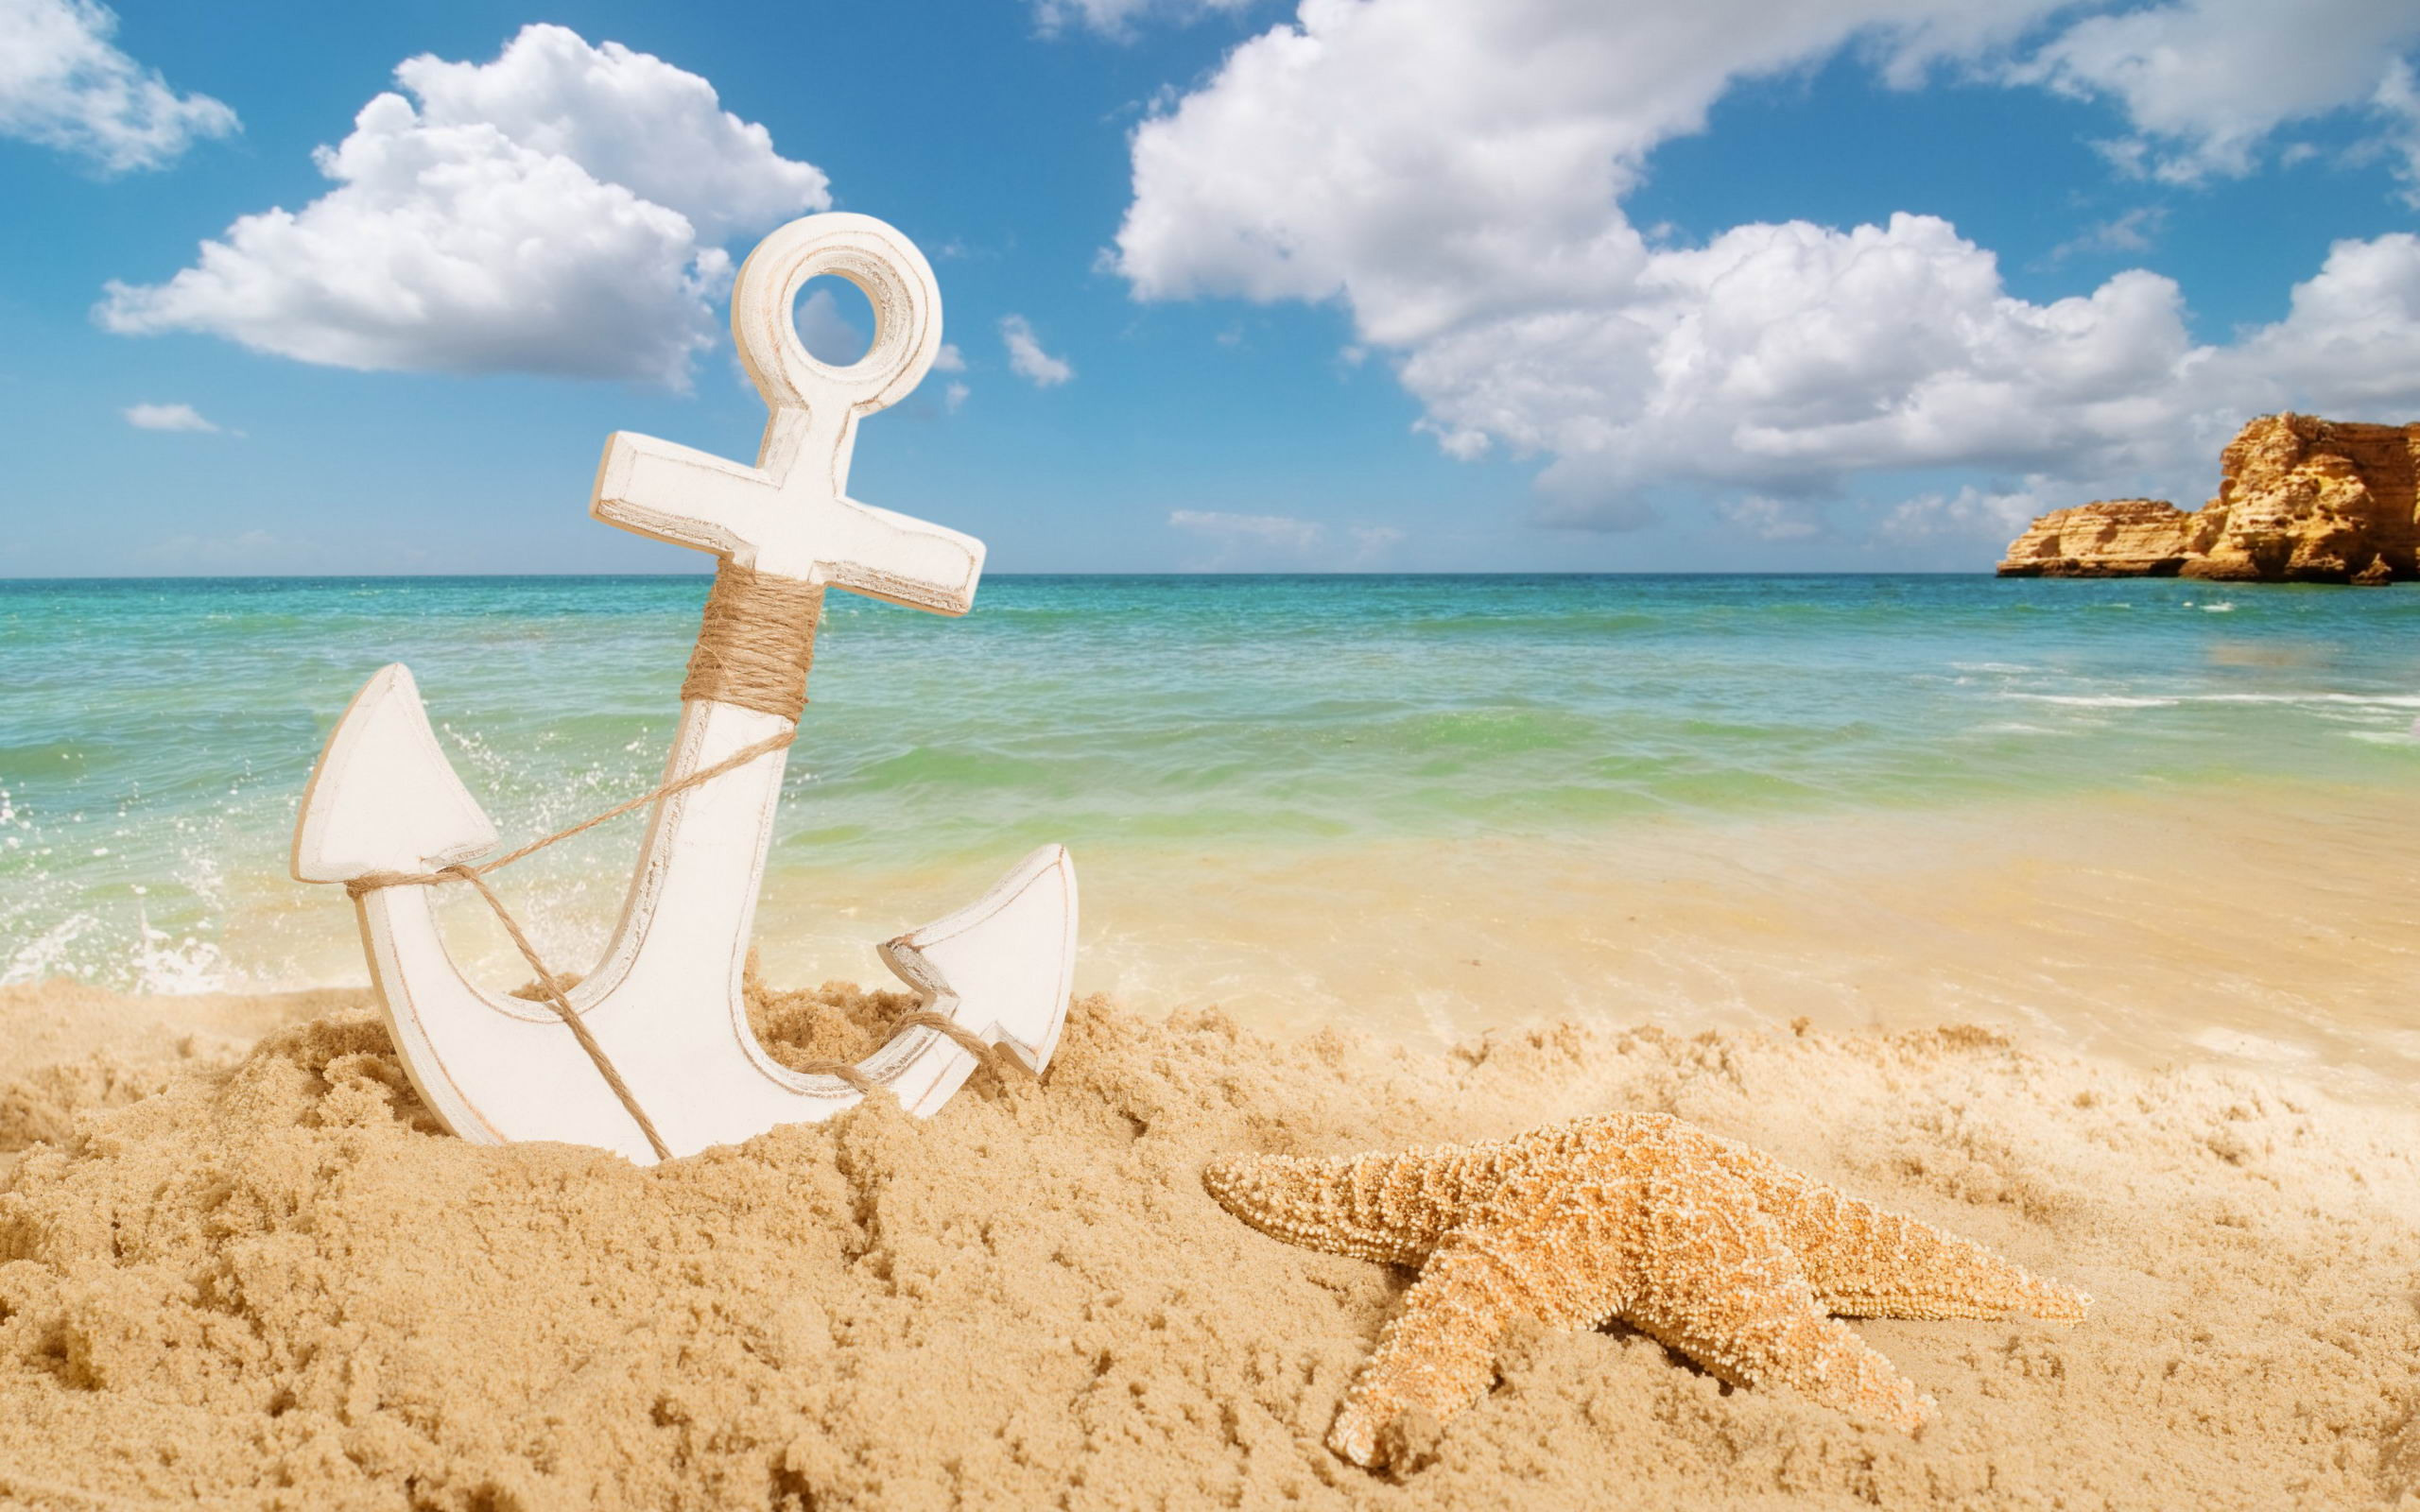 2560x1600 anchor on the beach desktop pc and mac wallpaper